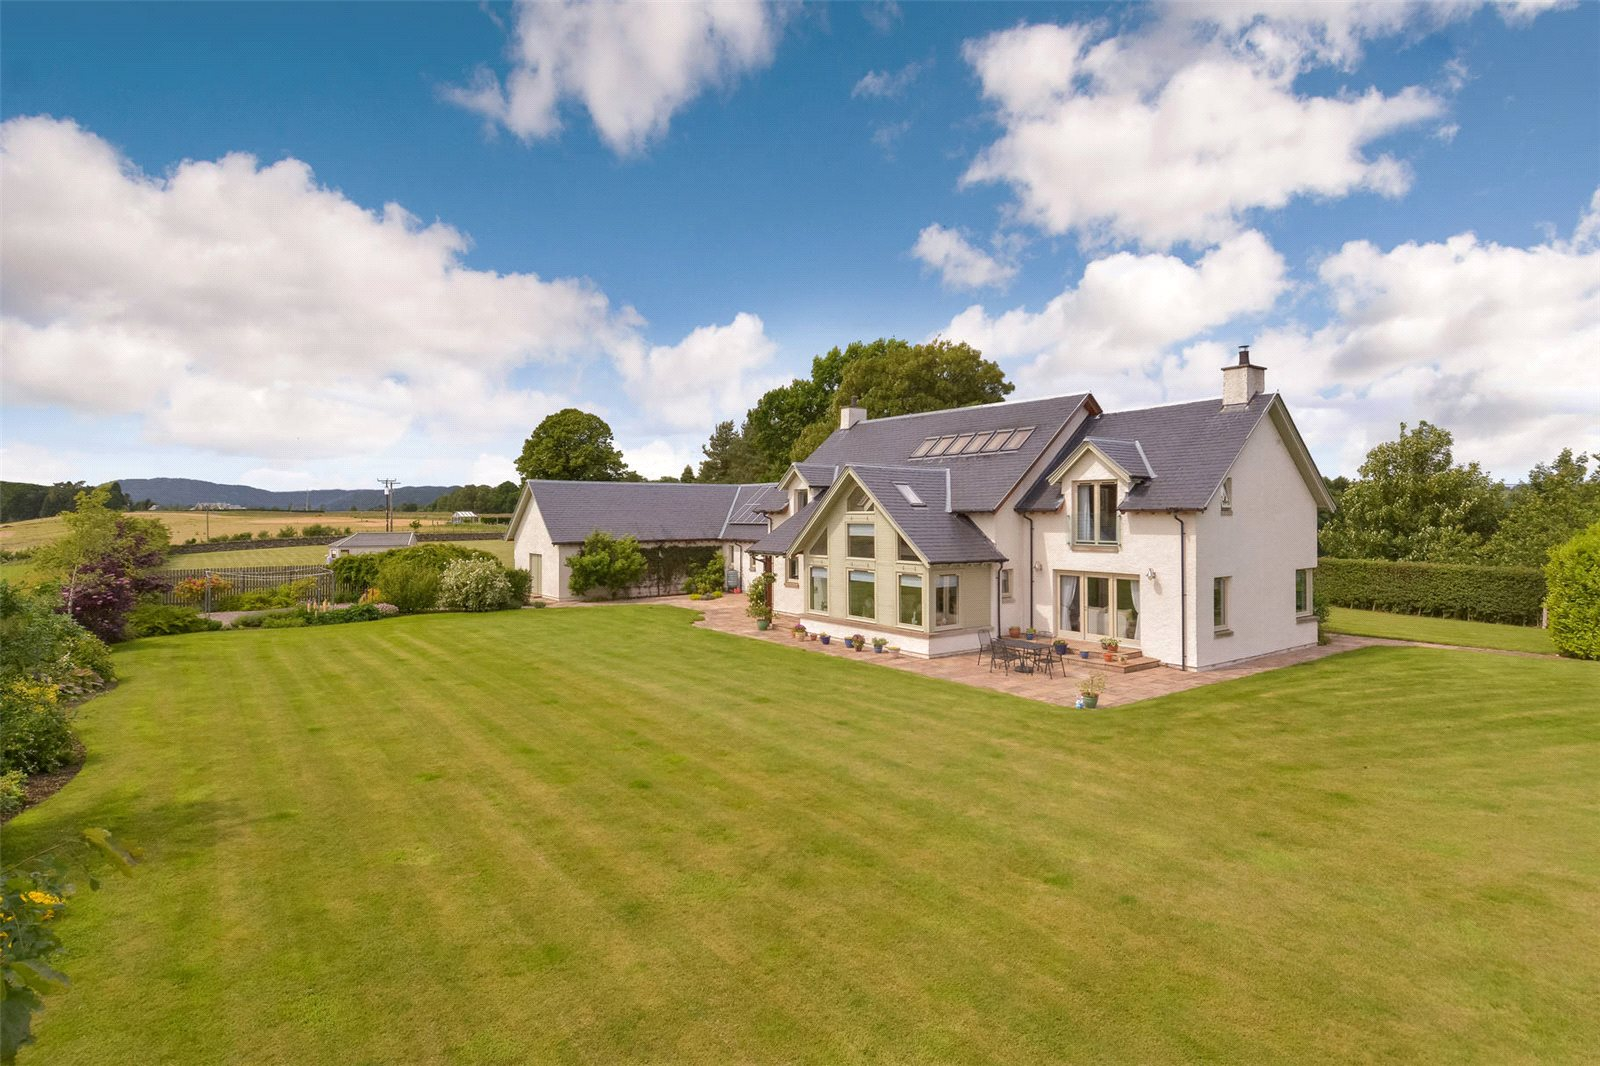 4 Bedrooms Detached House for sale in Balgreen, Stanley, Perth, Perthshire, PH1